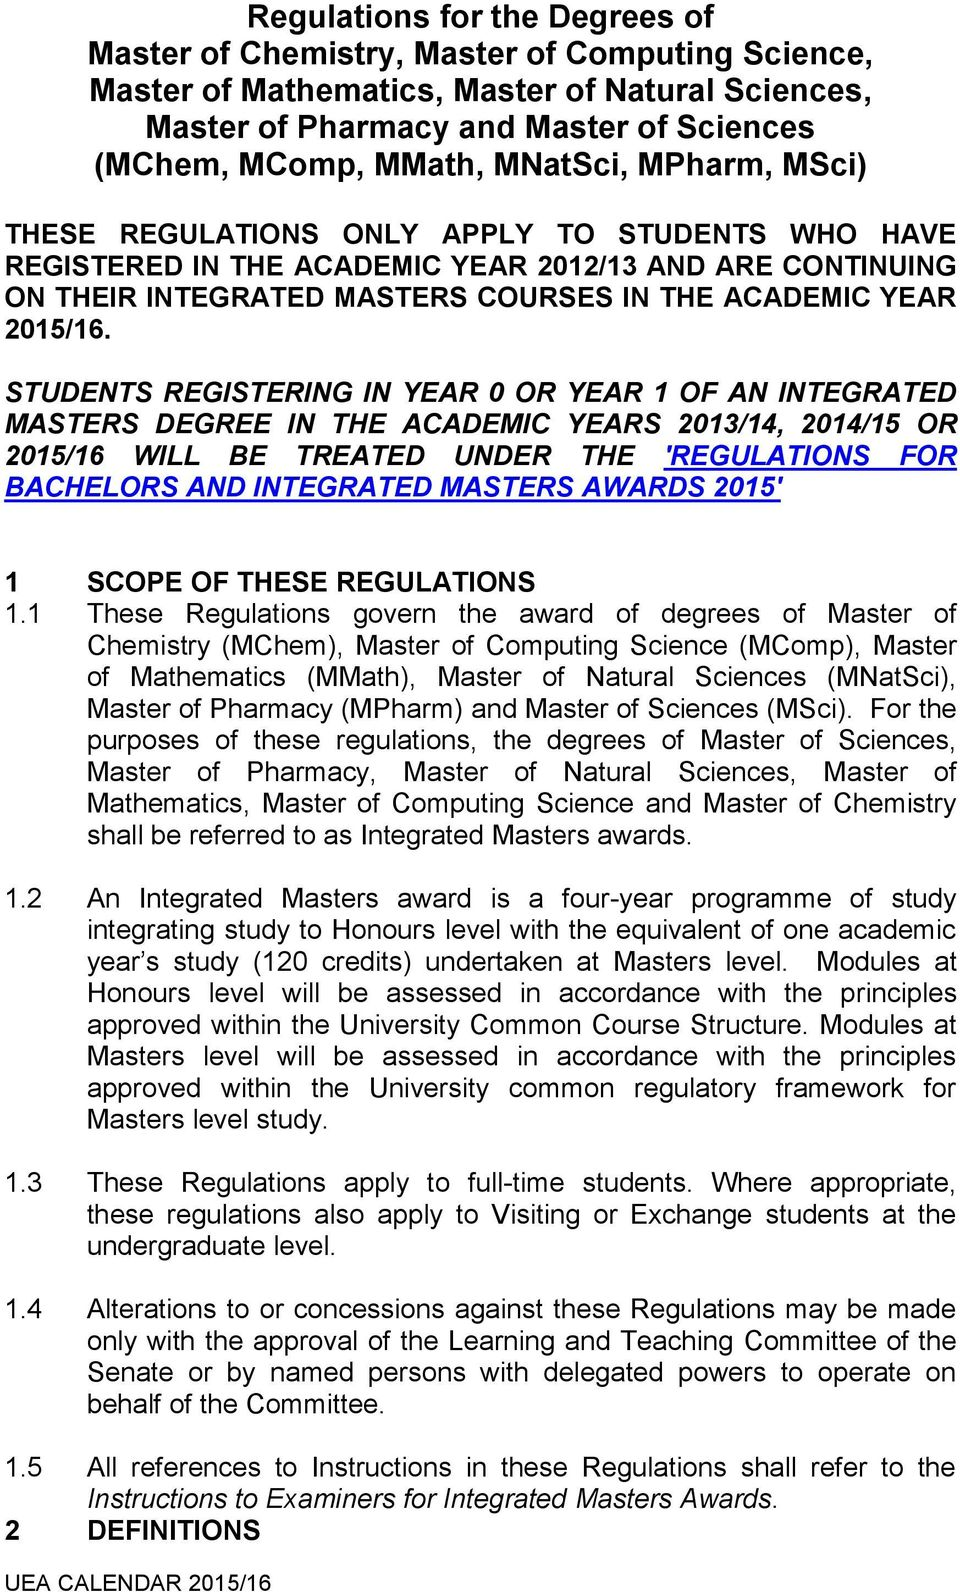 STUDENTS REGISTERING IN YEAR 0 OR YEAR 1 OF AN INTEGRATED MASTERS DEGREE IN THE ACADEMIC YEARS 2013/14, 2014/15 OR 2015/16 WILL BE TREATED UNDER THE 'REGULATIONS FOR BACHELORS AND INTEGRATED MASTERS